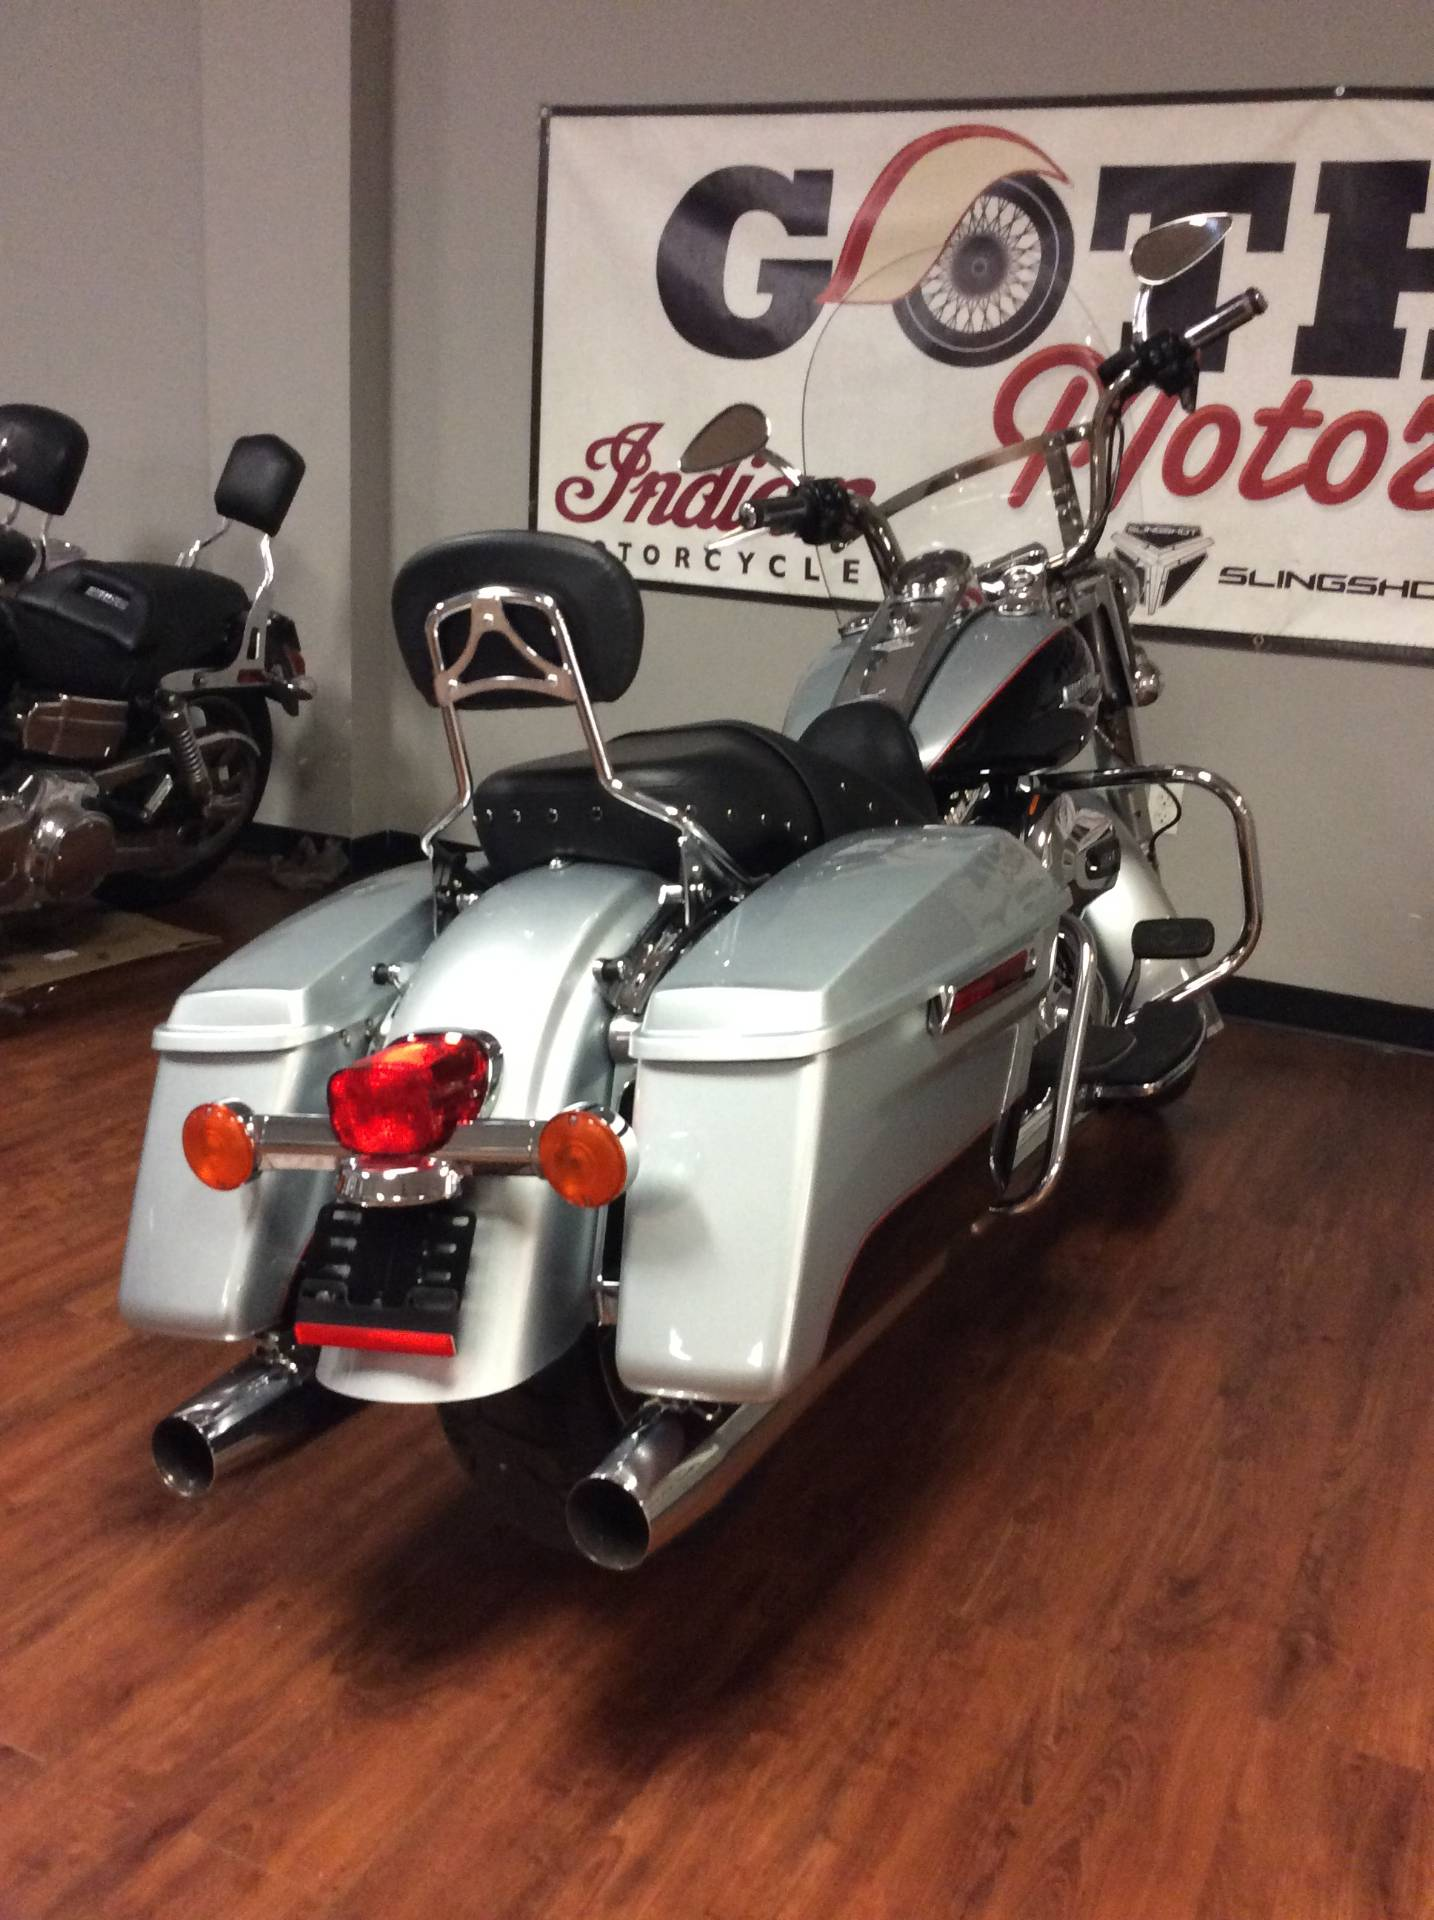 2015 Harley-Davidson Road King® in Staten Island, New York on